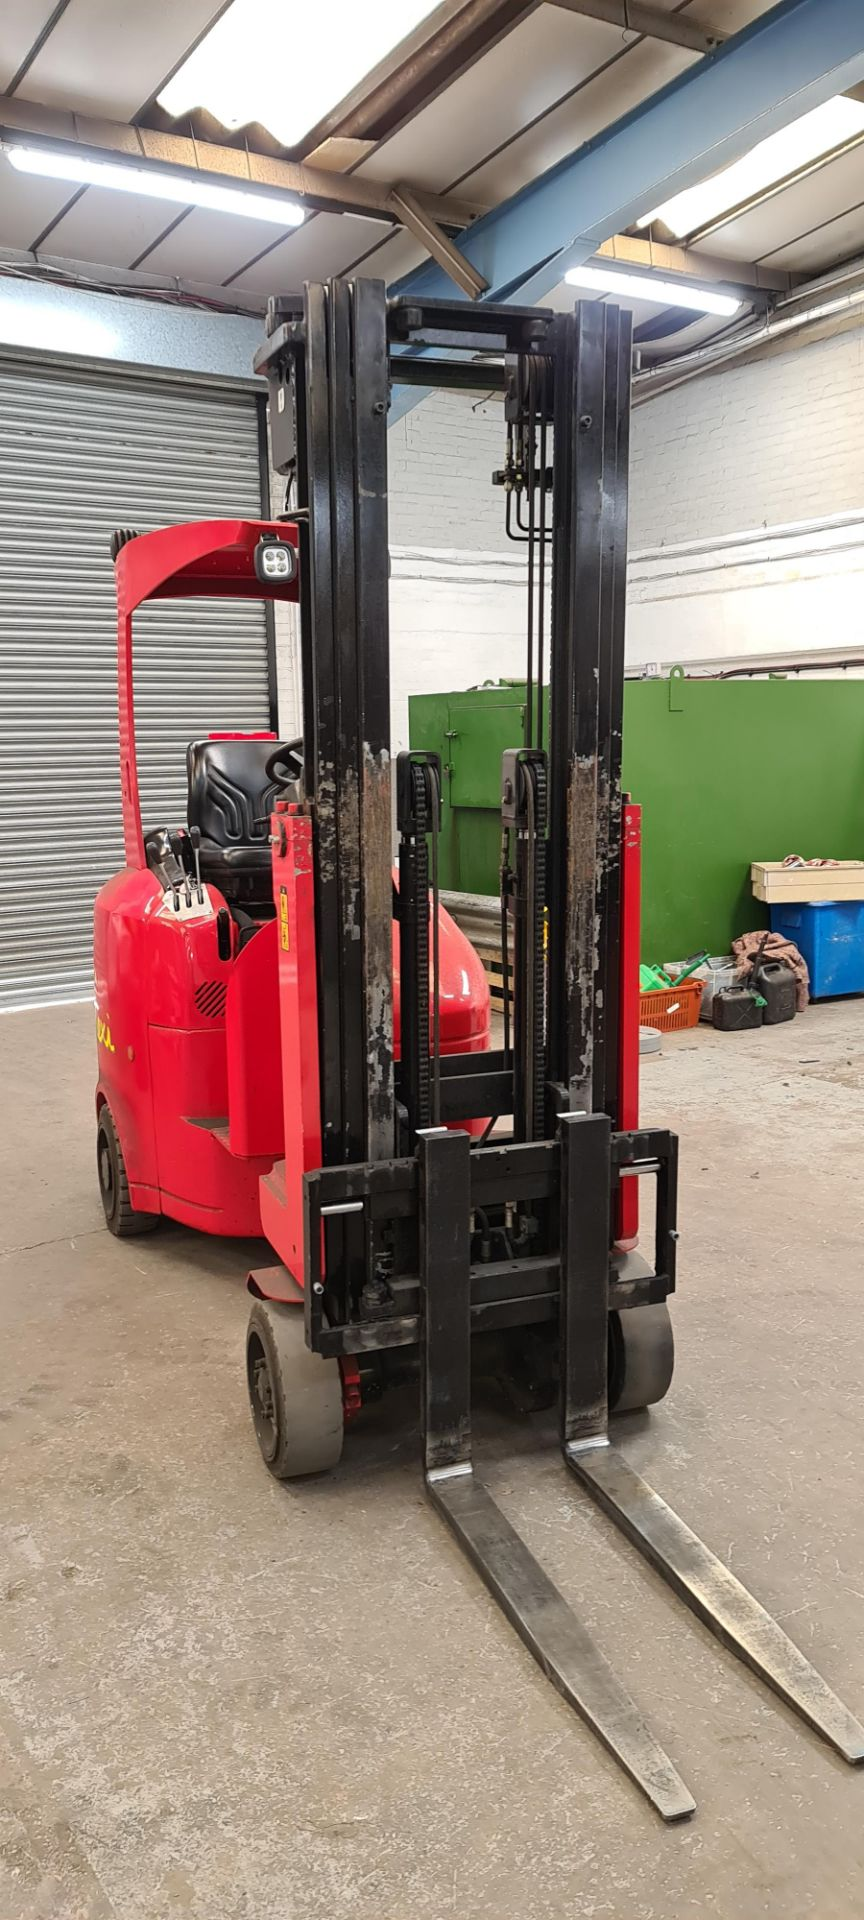 2014 Flexi Euro AC 'bendy' electric Fork Lift Truck - Image 2 of 29